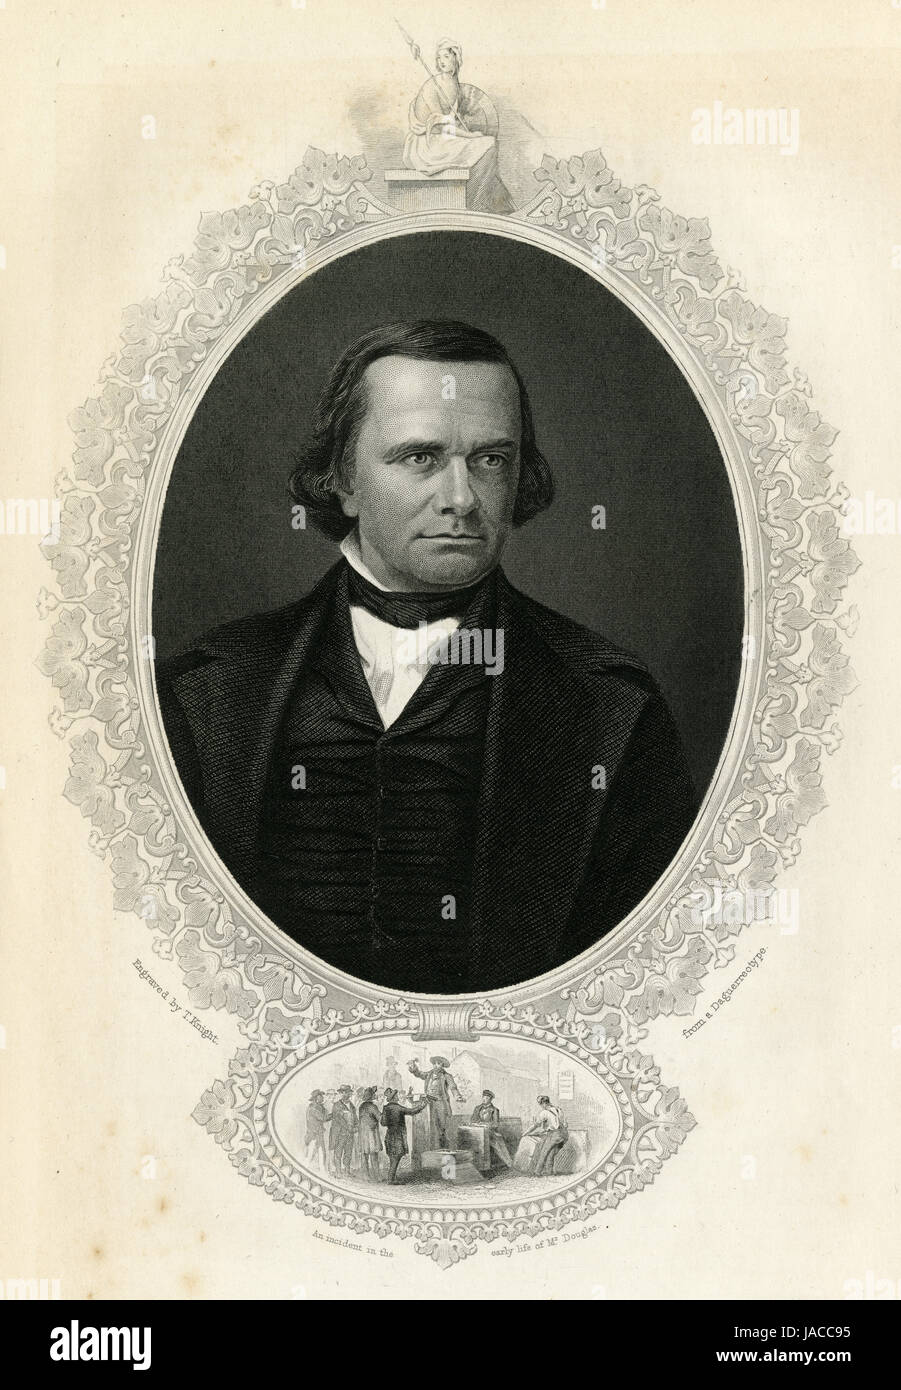 Antique c1860 engraving, Stephen Douglas. Stephen Arnold Douglas (1813-1861) was an American politician from Illinois - Stock Image